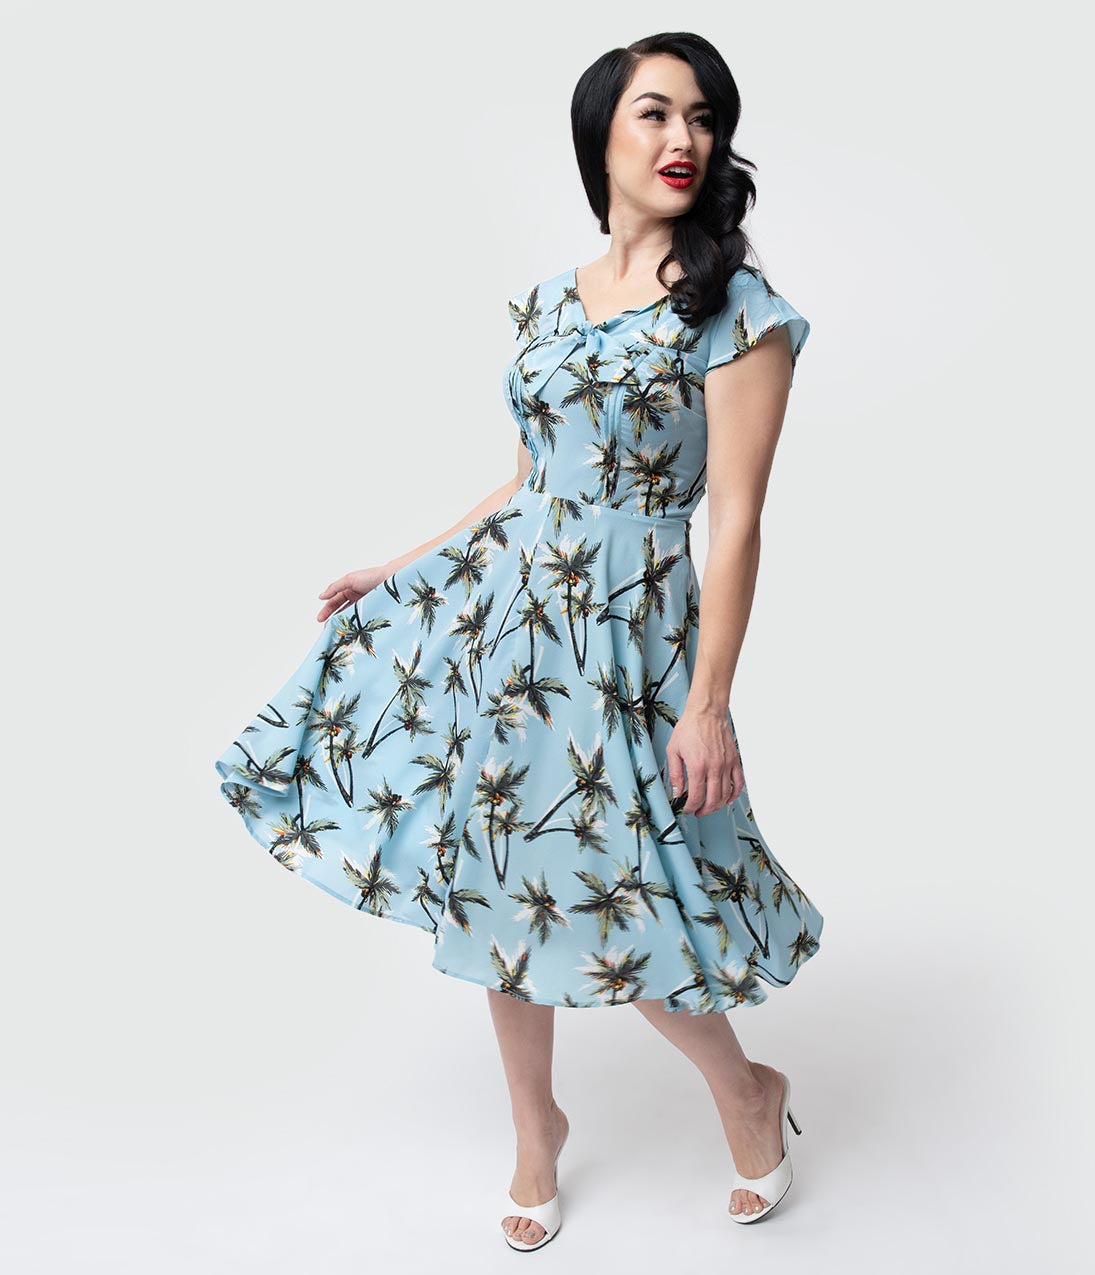 Swing Dance Clothing You Can Dance In Unique Vintage 1940S Style Light Blue Palm Tree Print Havilland Dress $32.99 AT vintagedancer.com